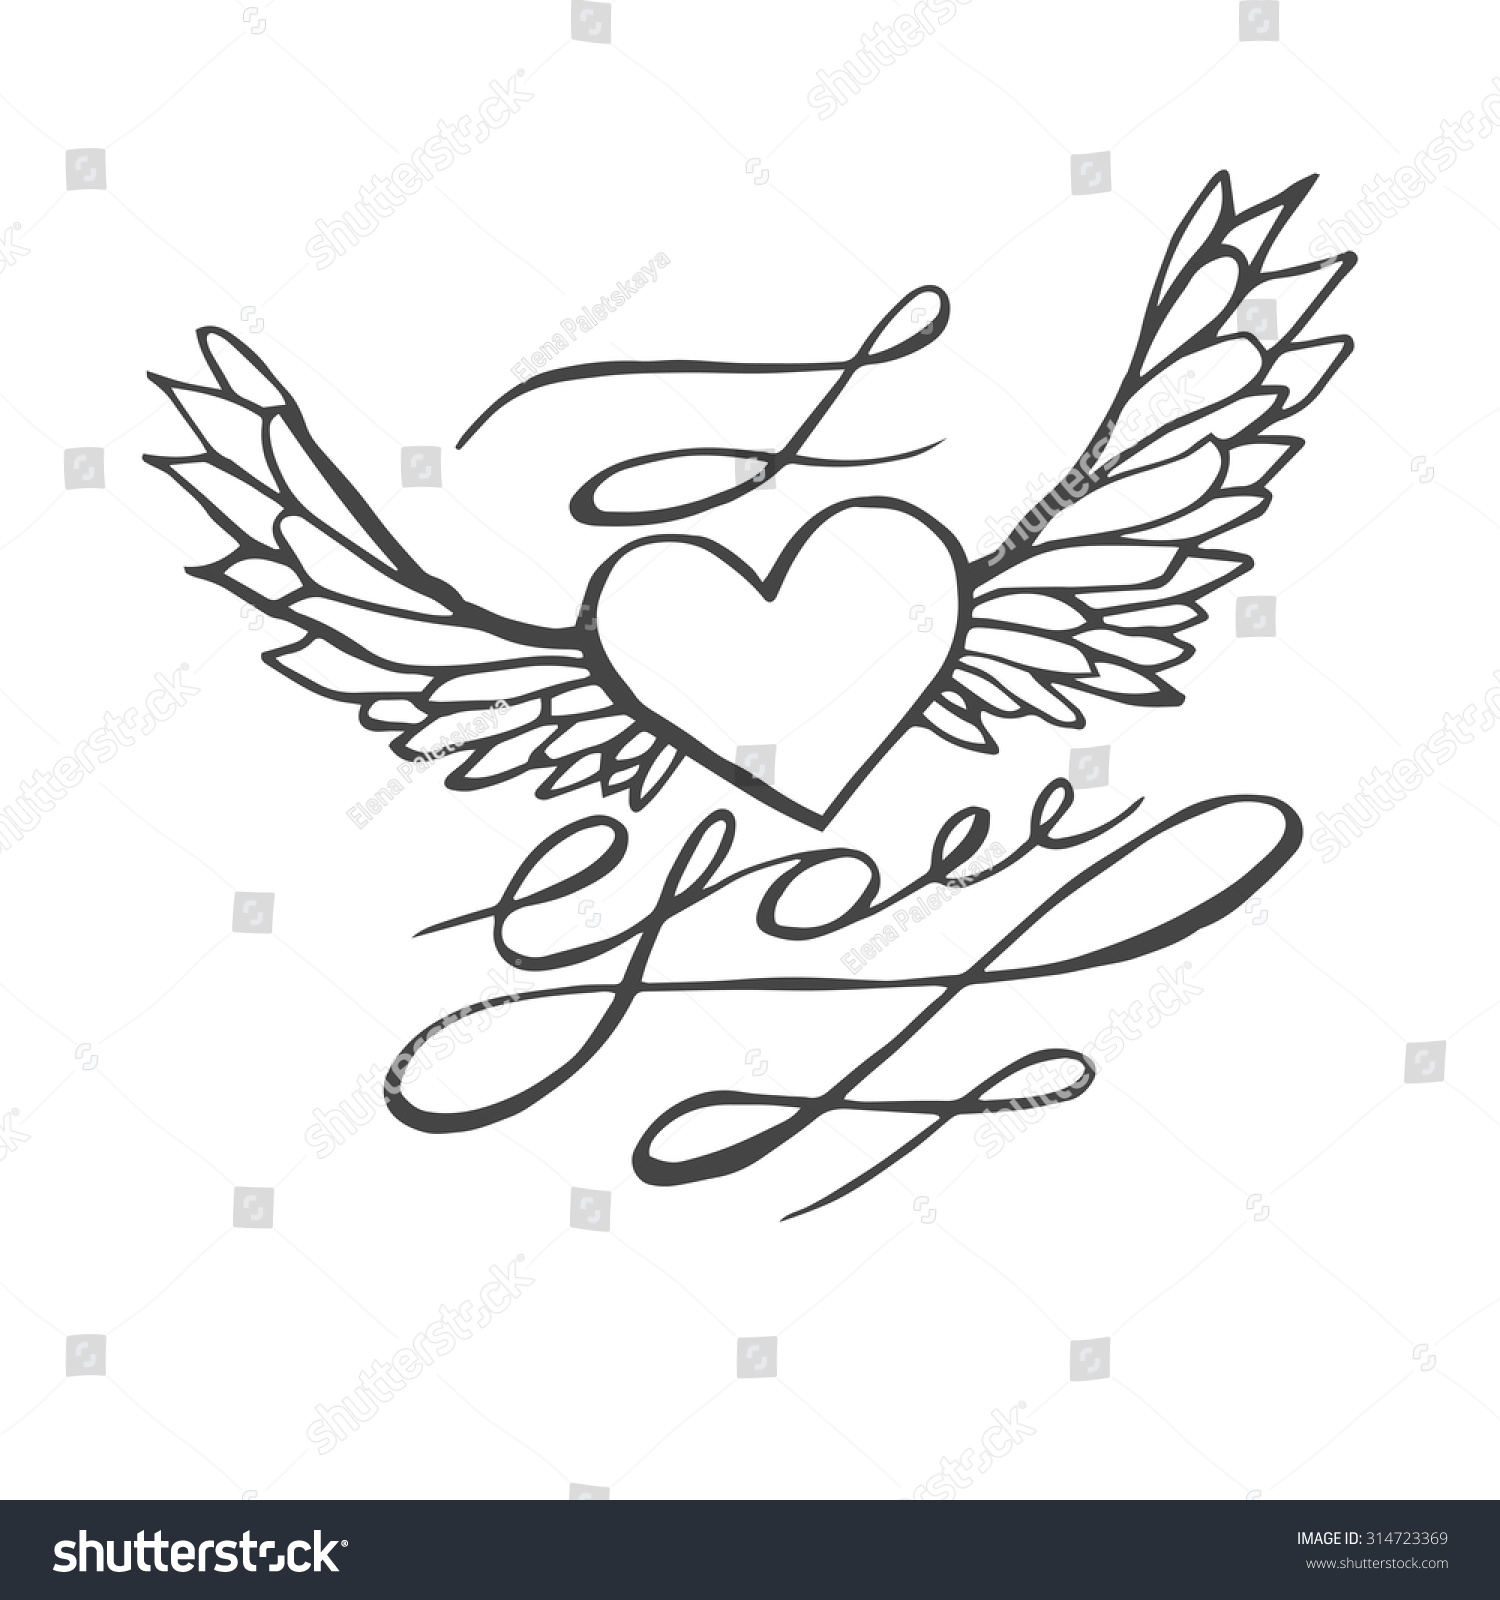 1500x1600 Pictures Romantic Heart Drawings,